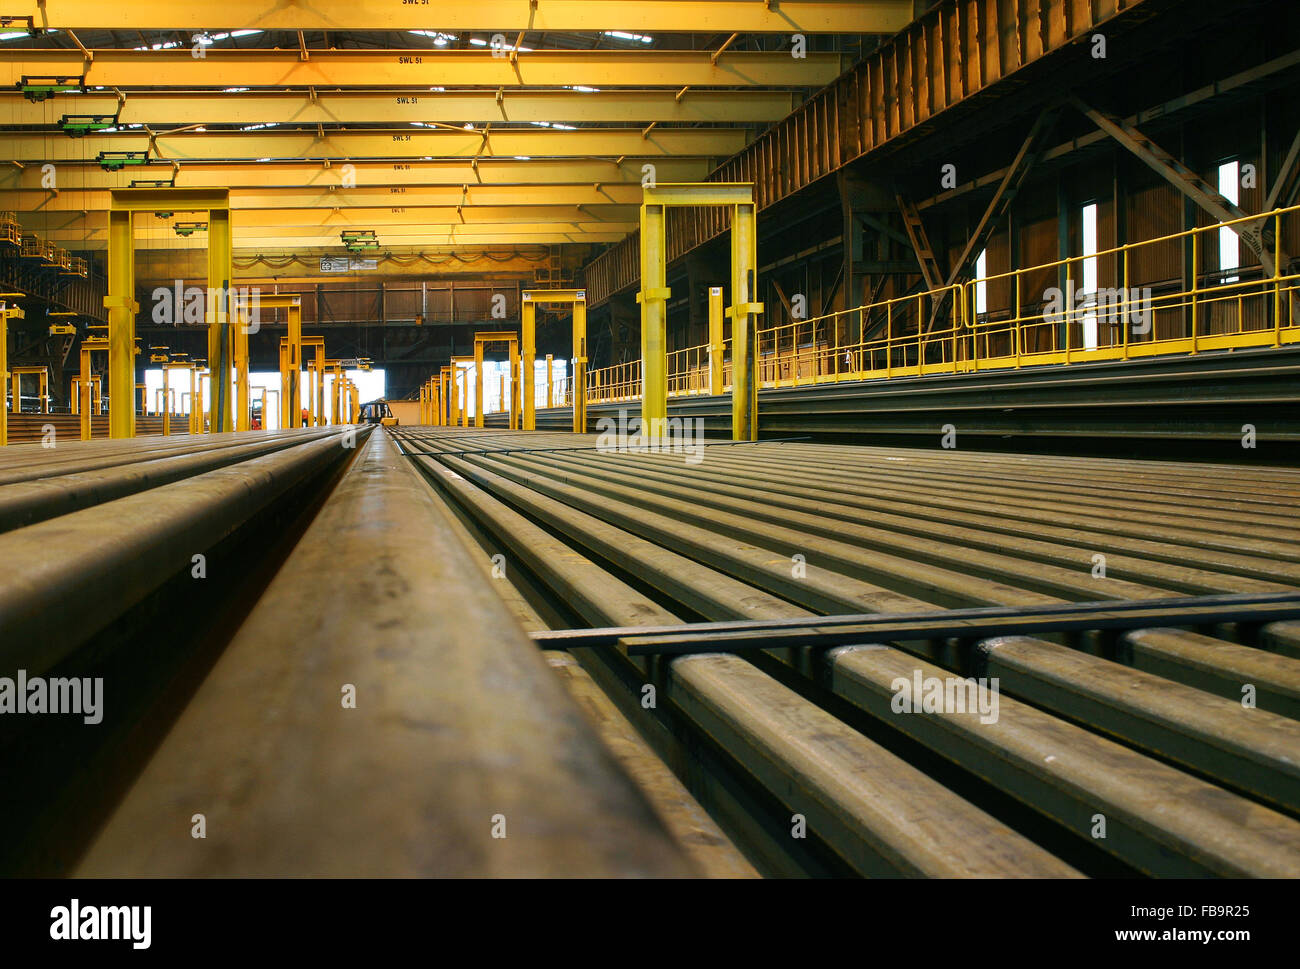 Long lengths of railway track ready for use. - Stock Image